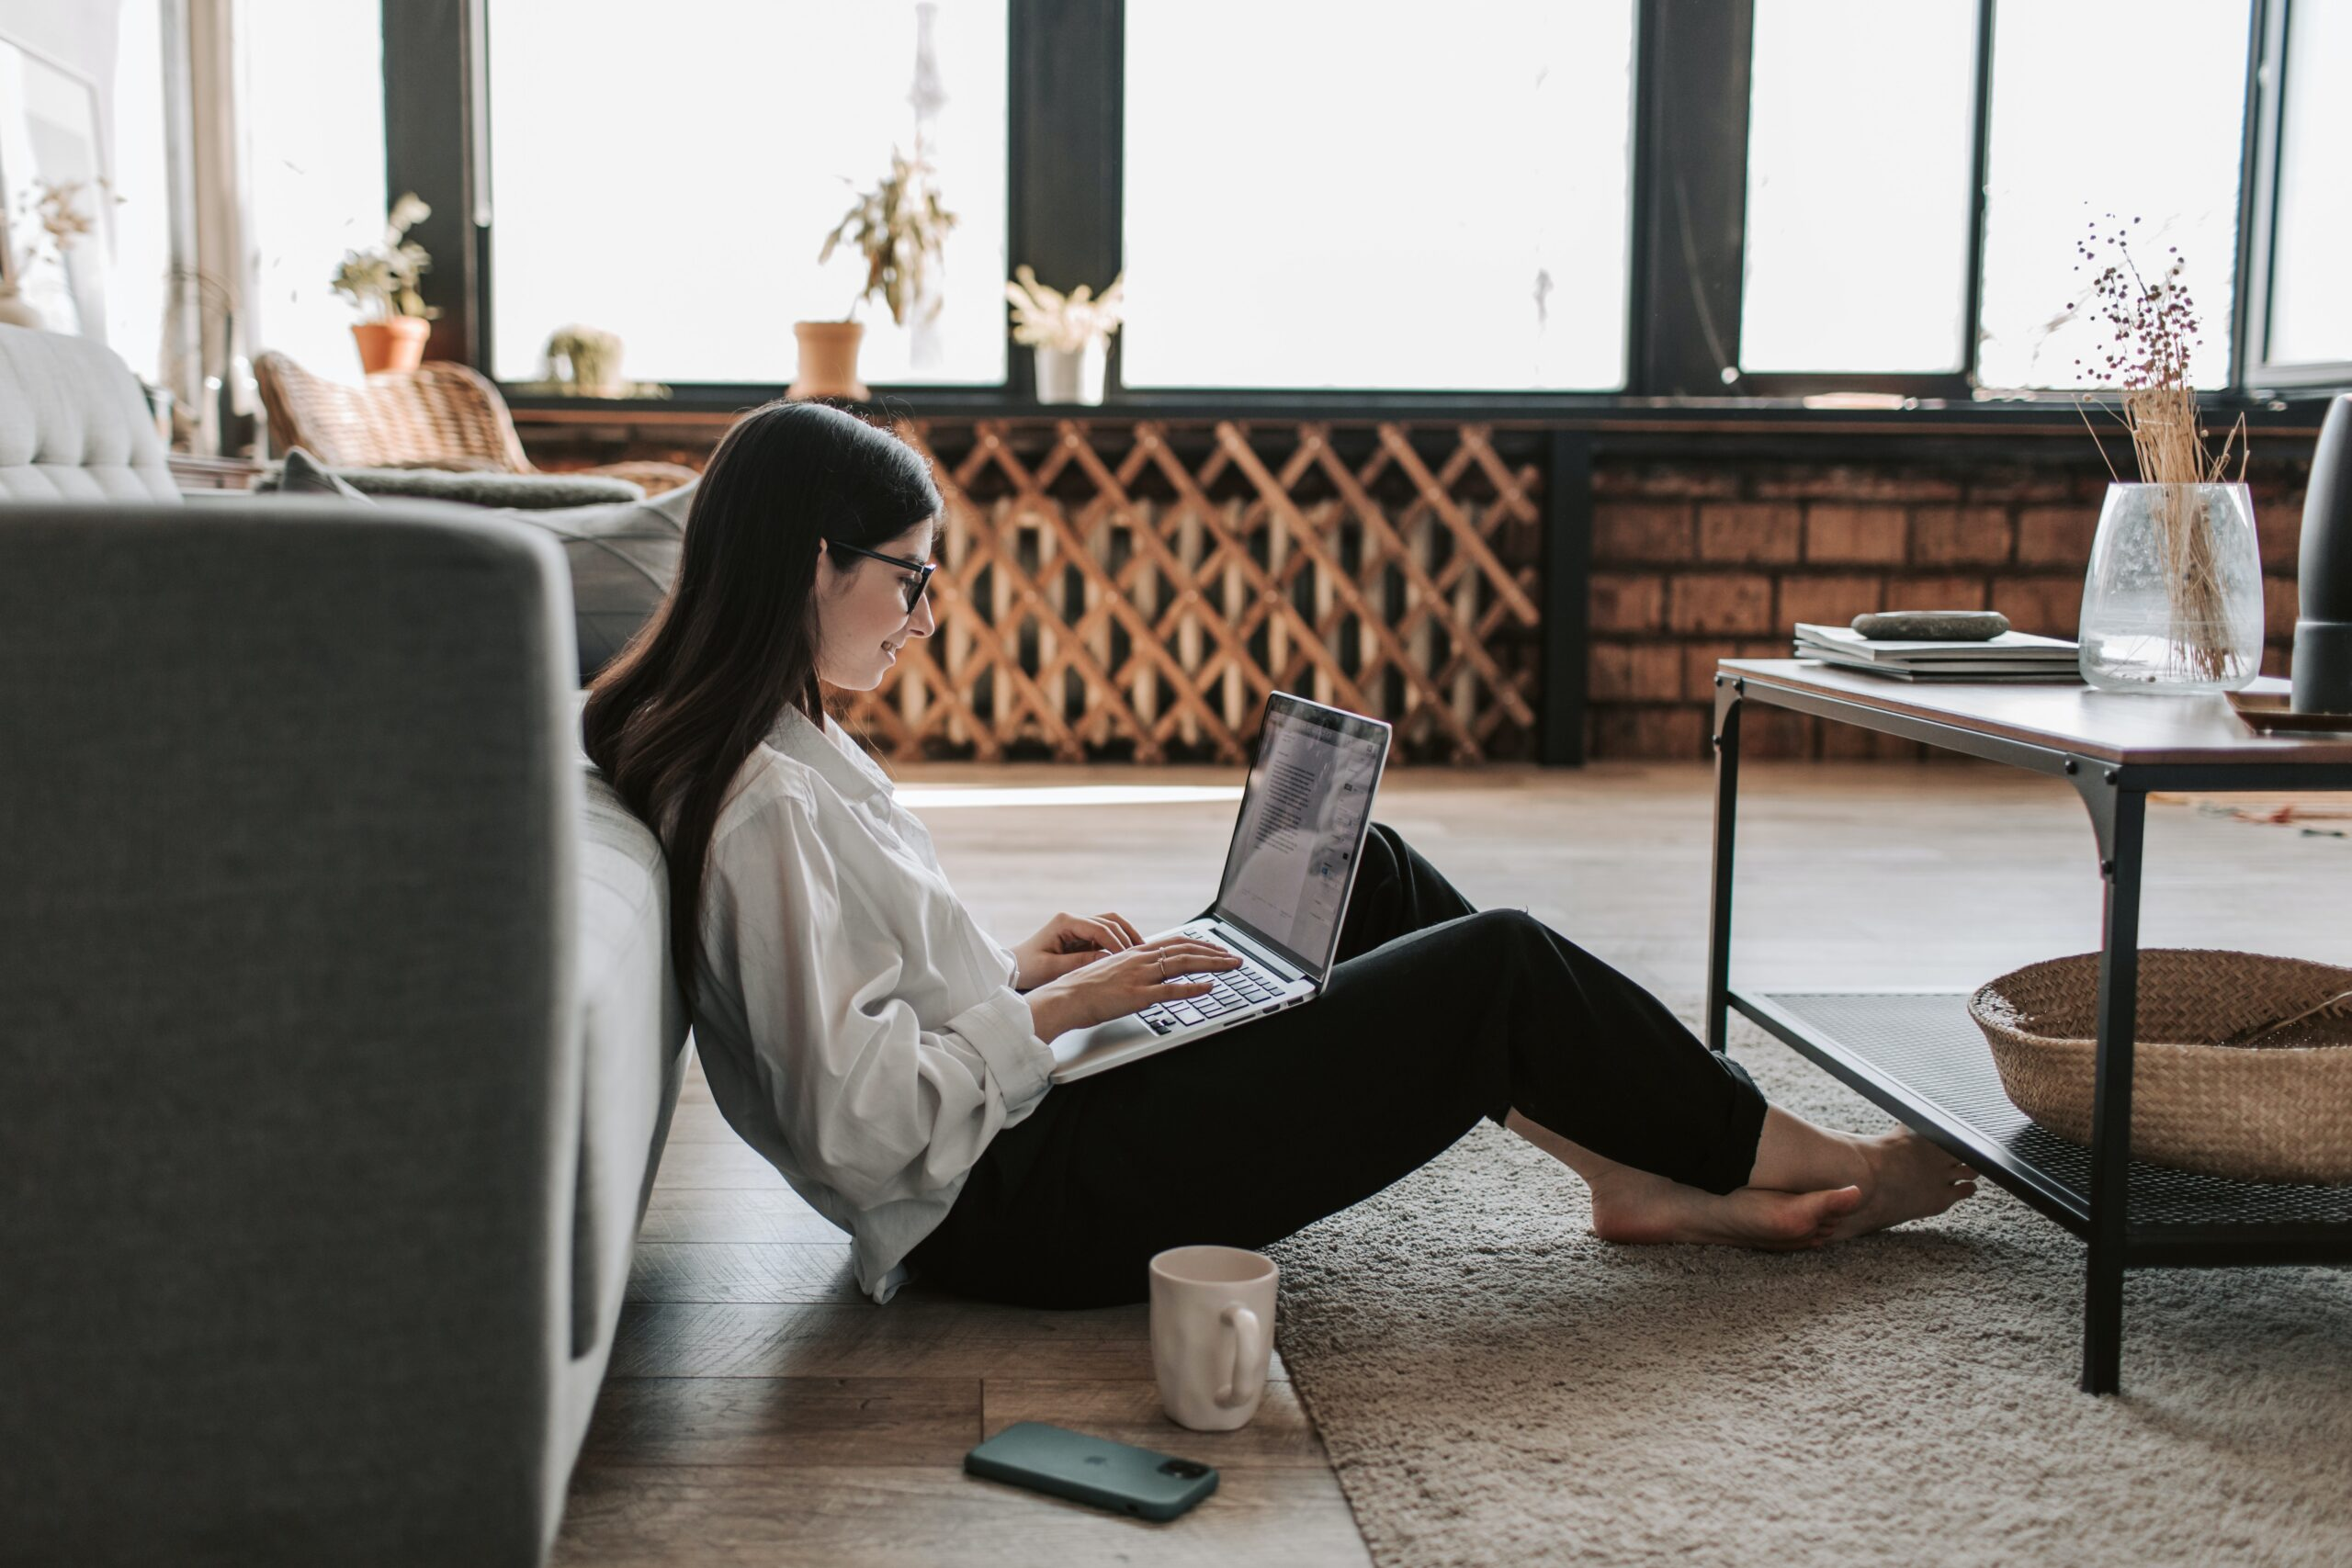 7 Amazing Data entry remote Jobs You Should Consider in 2021